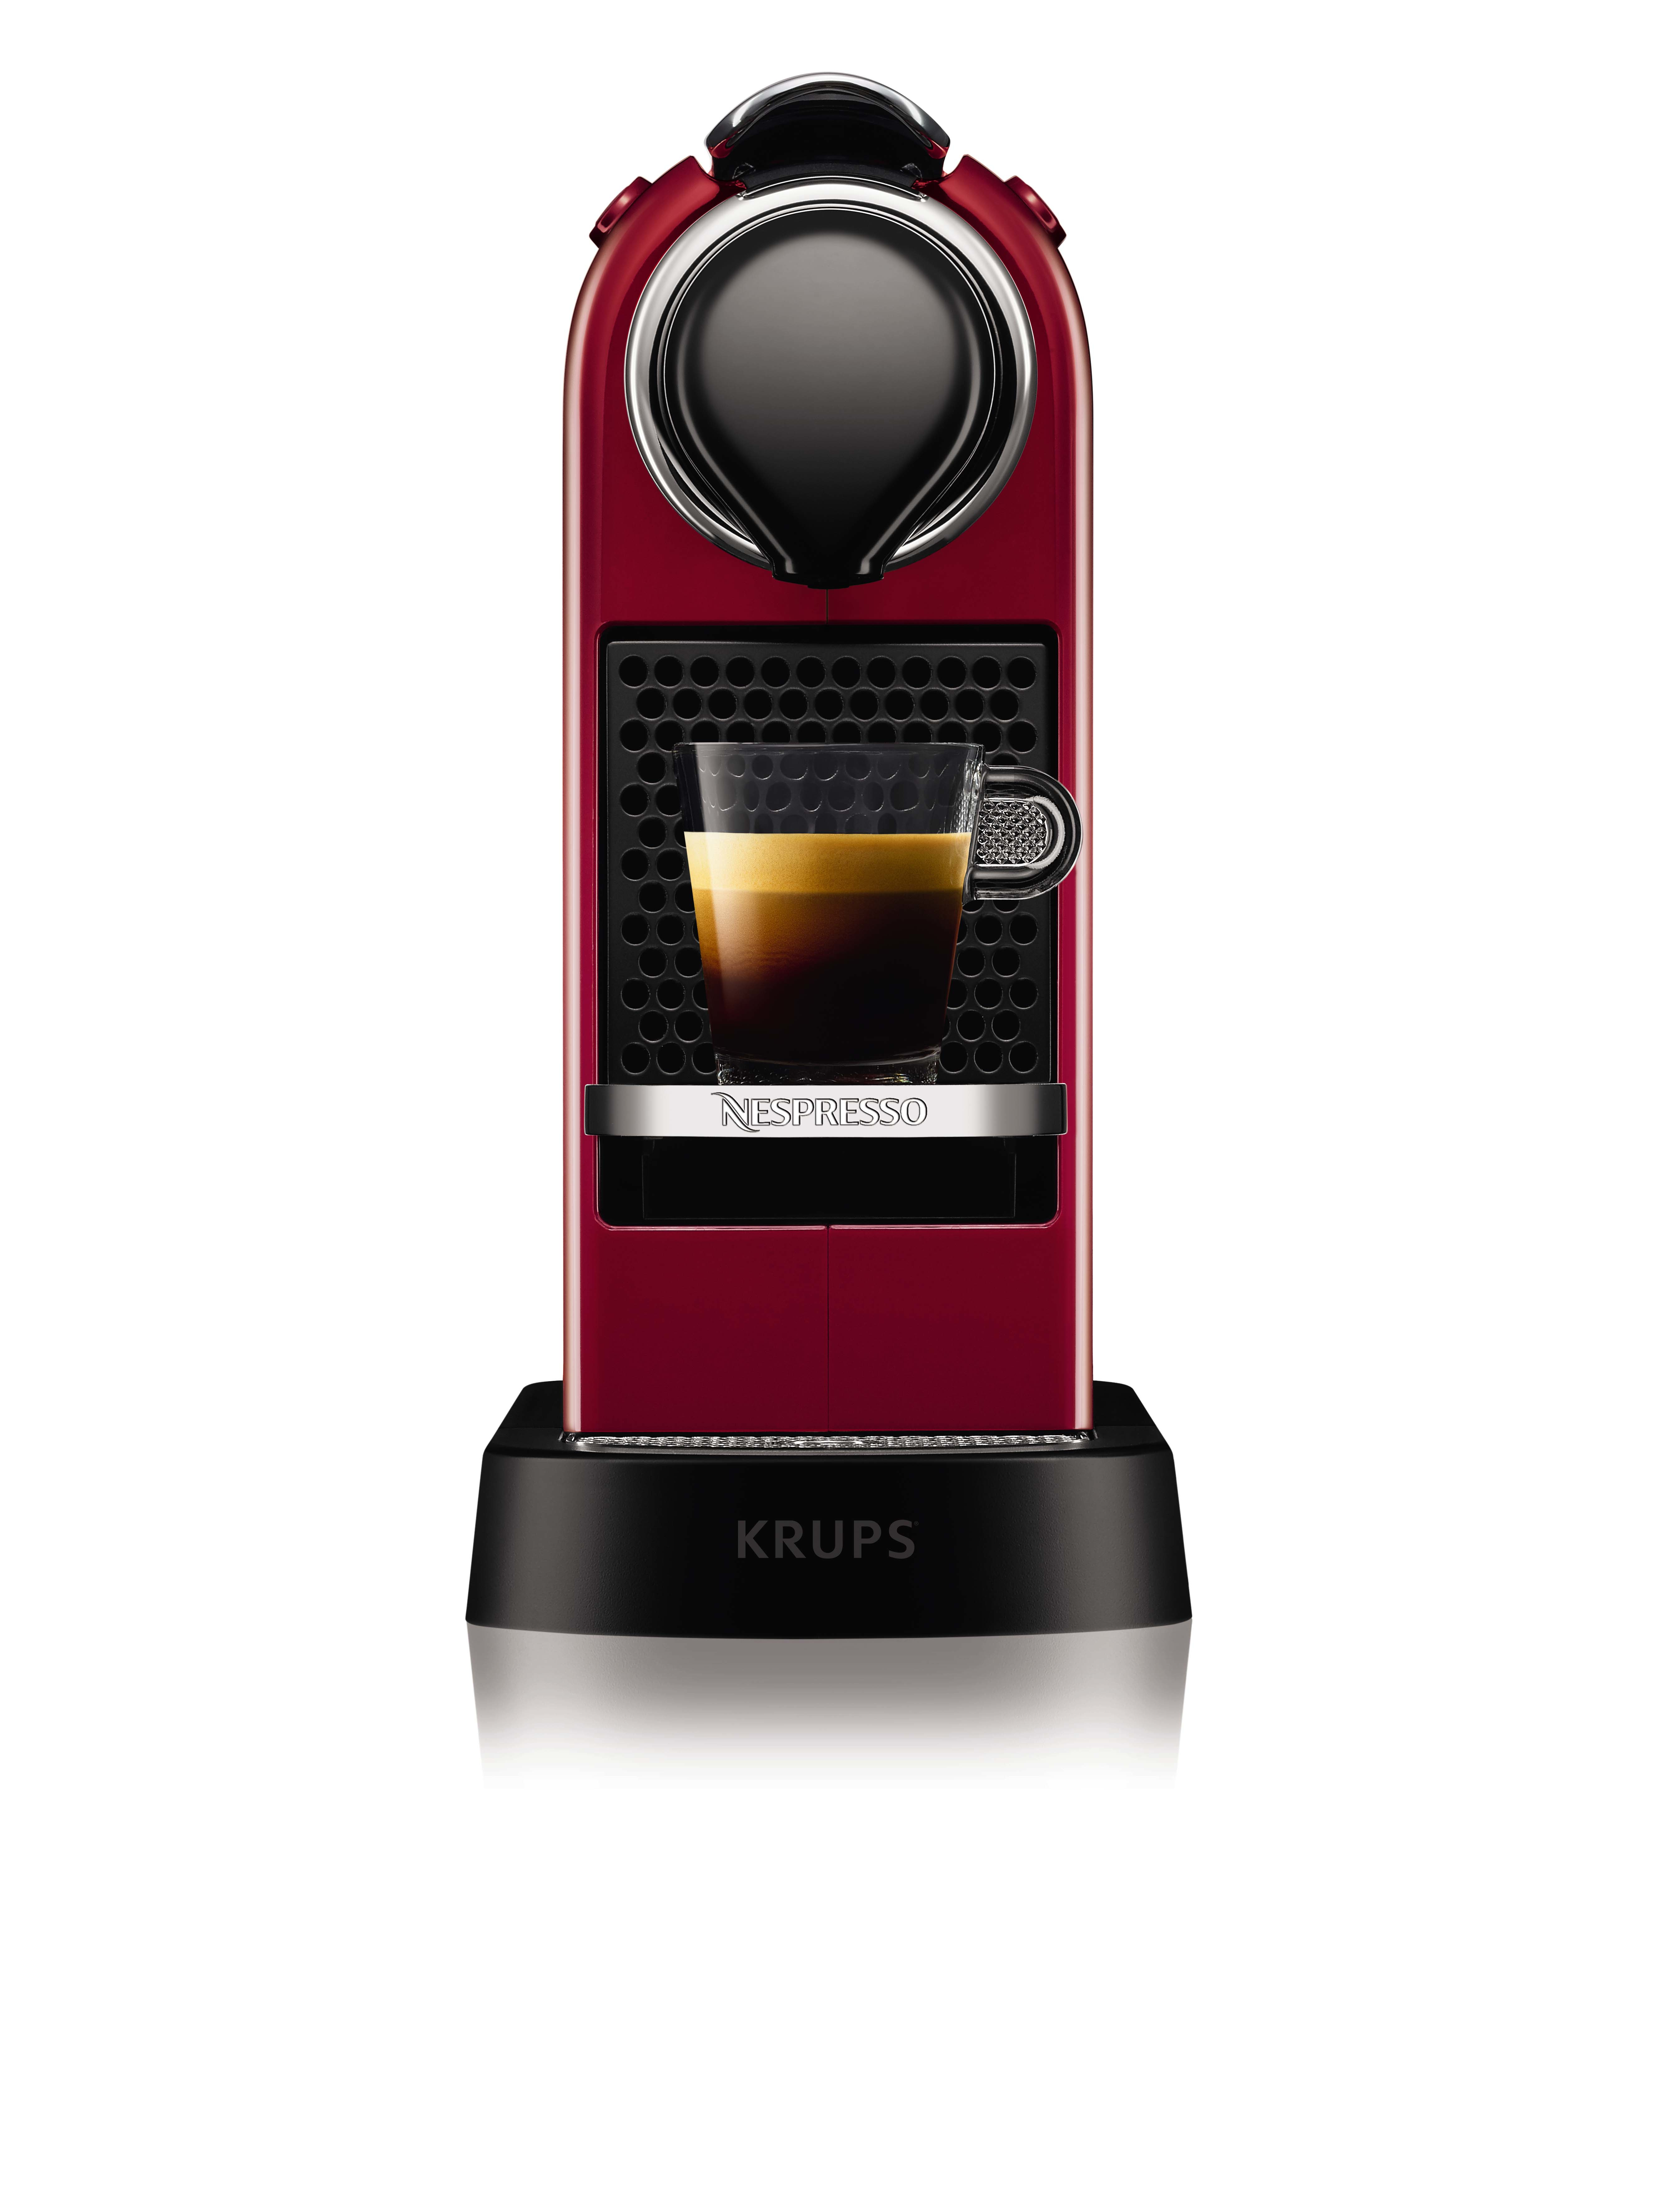 krups nespresso citiz freistehend pad kaffeemaschine 1l schwarz rot xn7405 eur 233 90. Black Bedroom Furniture Sets. Home Design Ideas